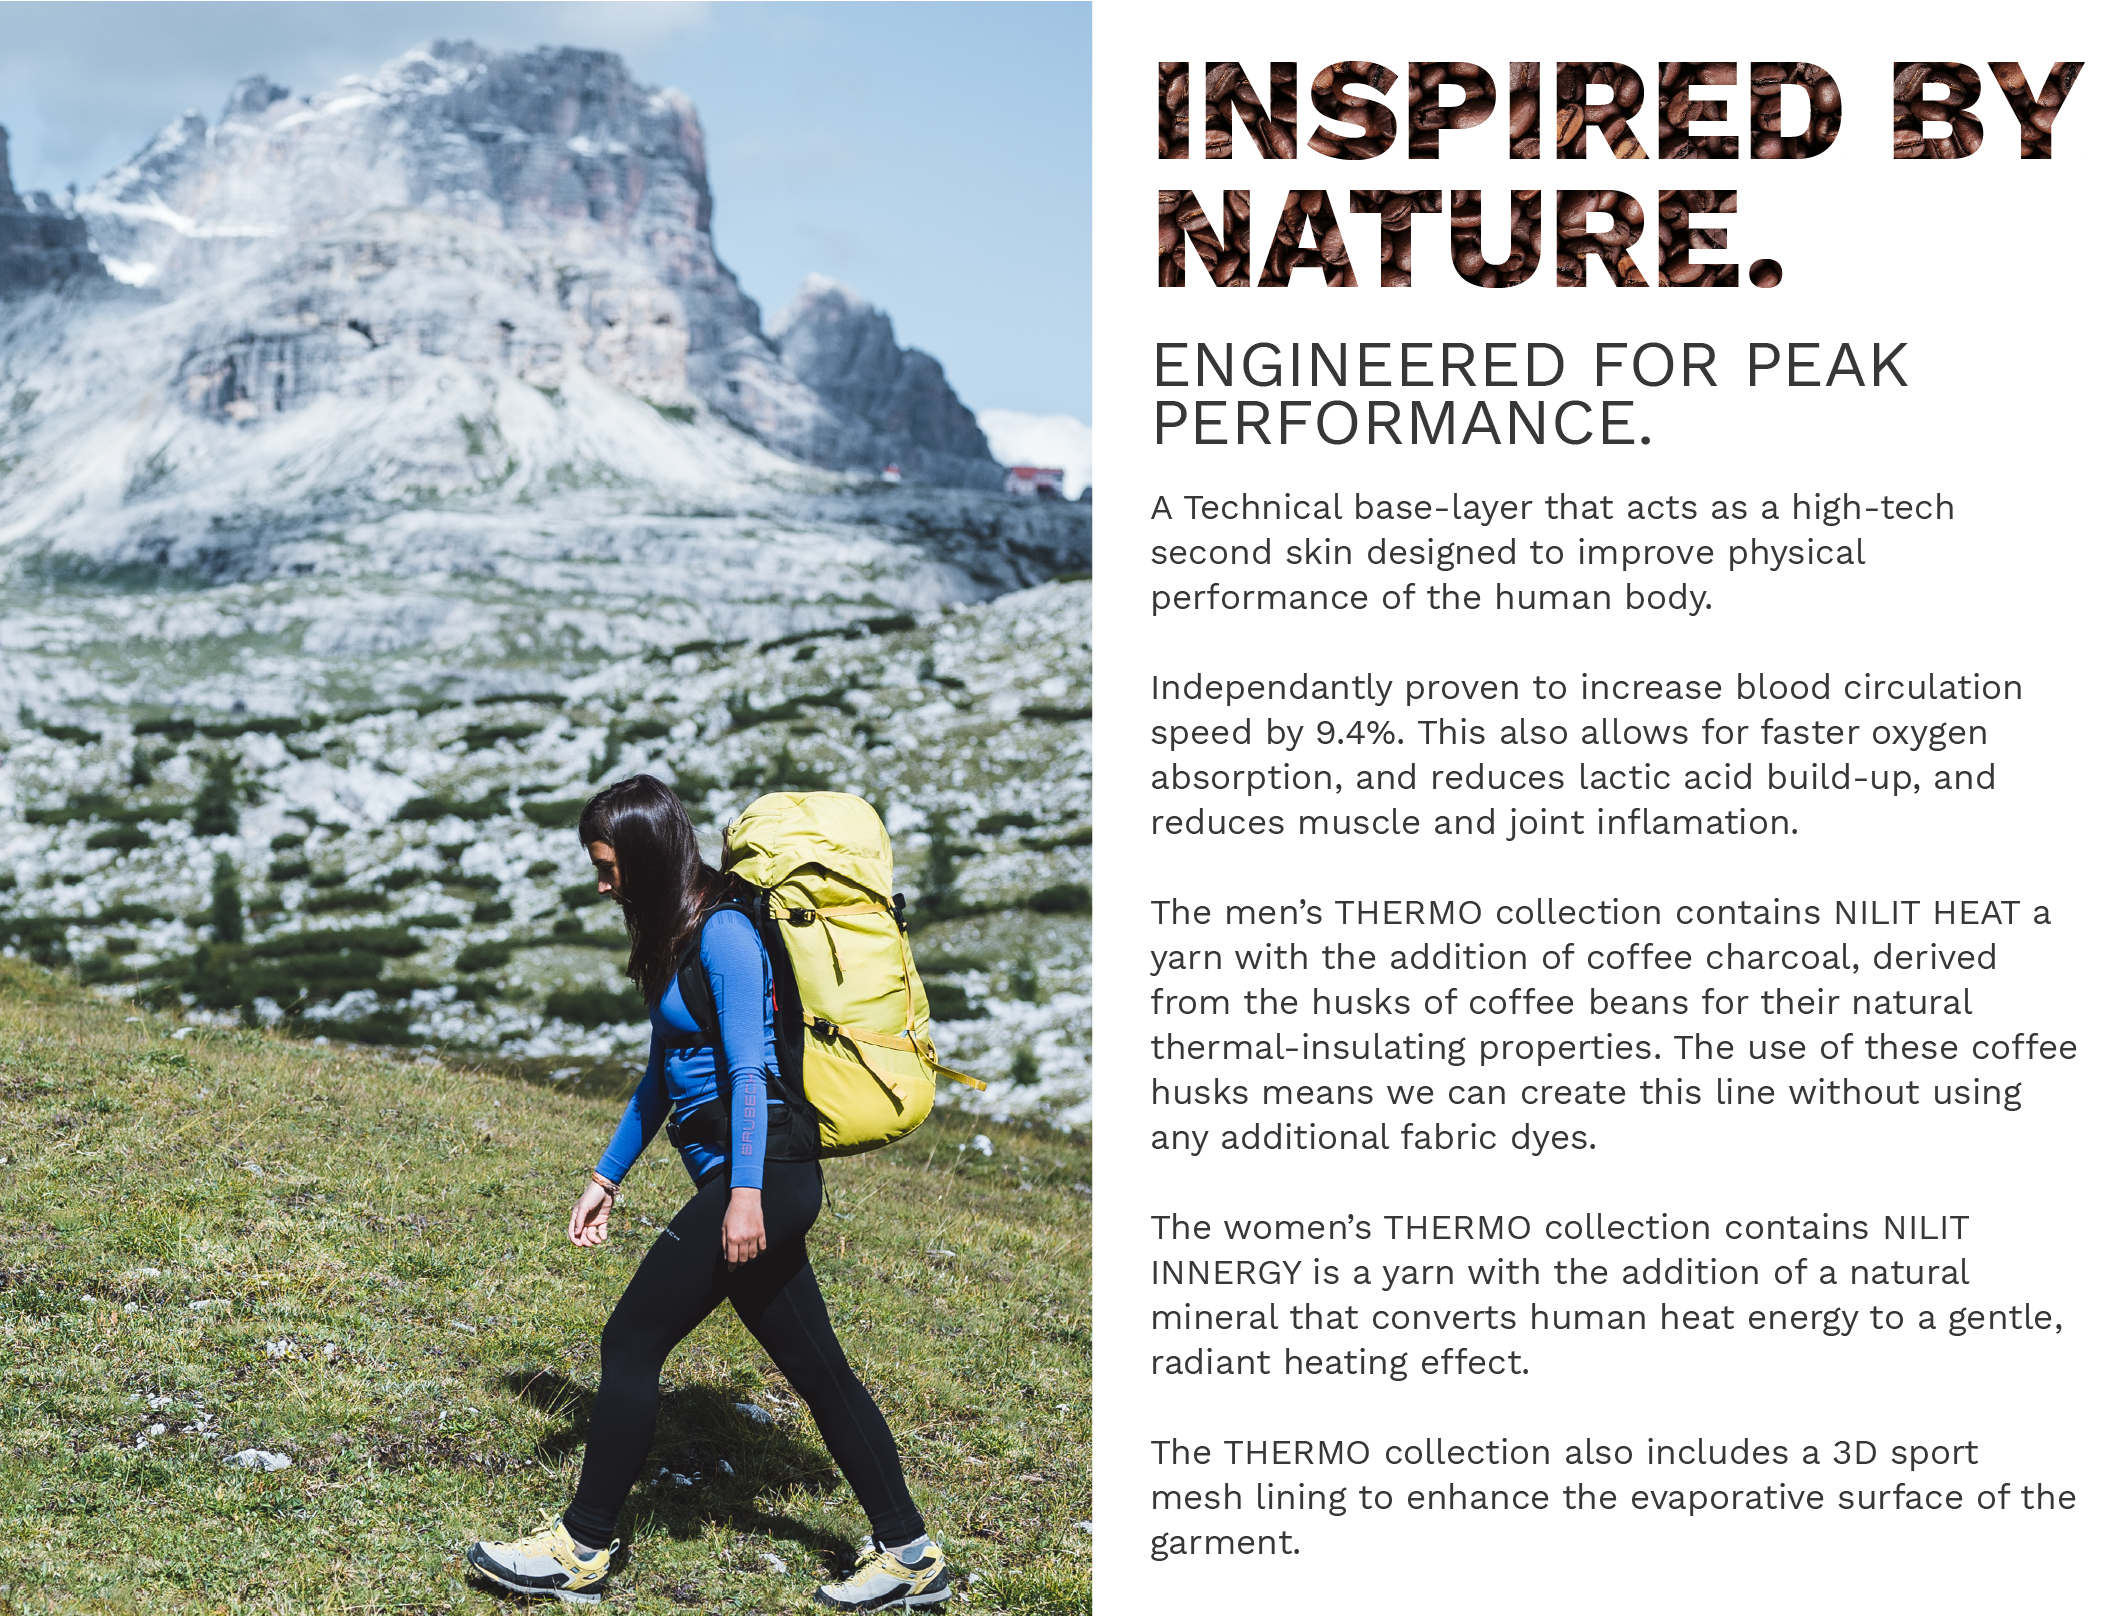 Inspired by Nature, Engineered for peak performance. A Technical base-layer that acts as a high-tech second skin designed to improve physical  performance of the human body.   Independantly proven to icreases blood circulation speed by 9.4%. This also allows for faster oxygen  absorption, and reduces lactic acid build-up, and reduces muscle and joint inflamation.    The men's THERMO collection contains NILIT HEAT a yarn with the addition of coffee charcoal, derived from the husks of coffee beans for their natural  thermal-insulating properties. The use of these coffee husks means we can create this line without using any additional fabric dyes.   The women's THERMO collection contains NILIT  INNERGY is a yarn with the addition of a natural mineral that converts human heat energy to a gentle, radiant heating effect.   The THERMO collection also includes a 3D sport mesh lining to enhance the evaporative surface of the garment.